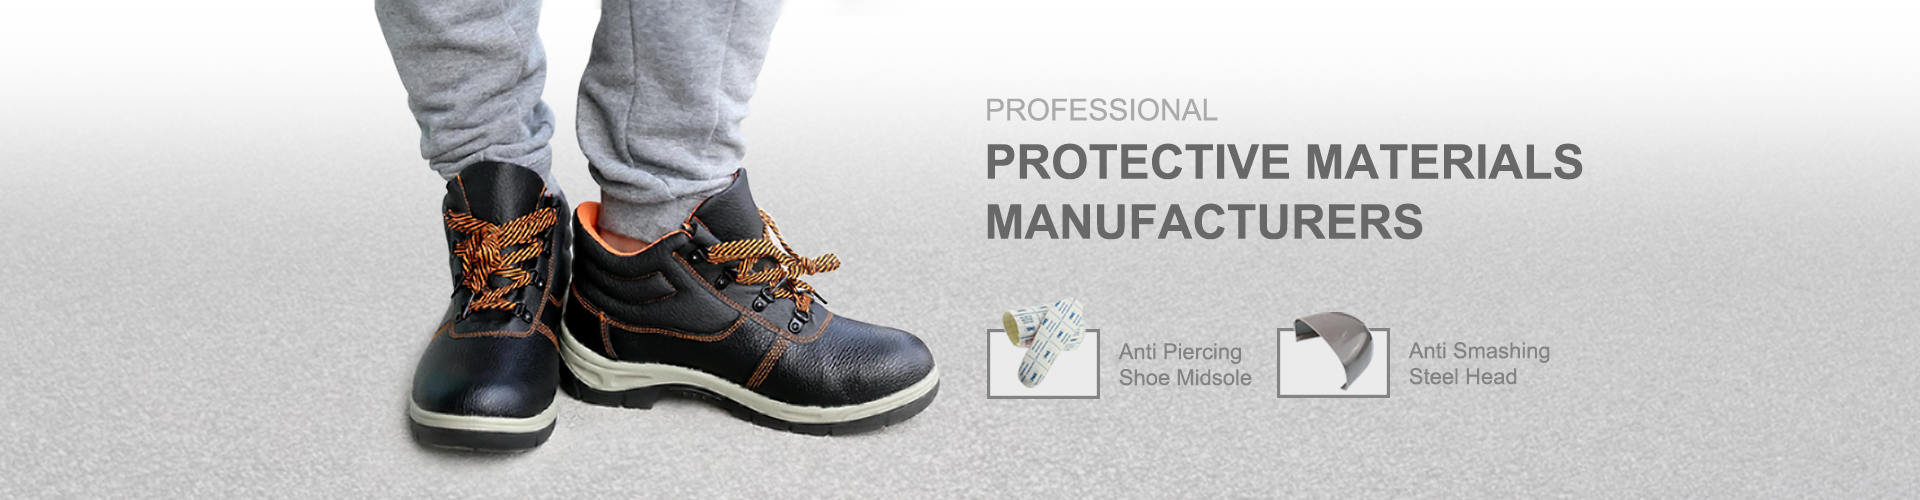 How can I find the most comfortable safety boots?